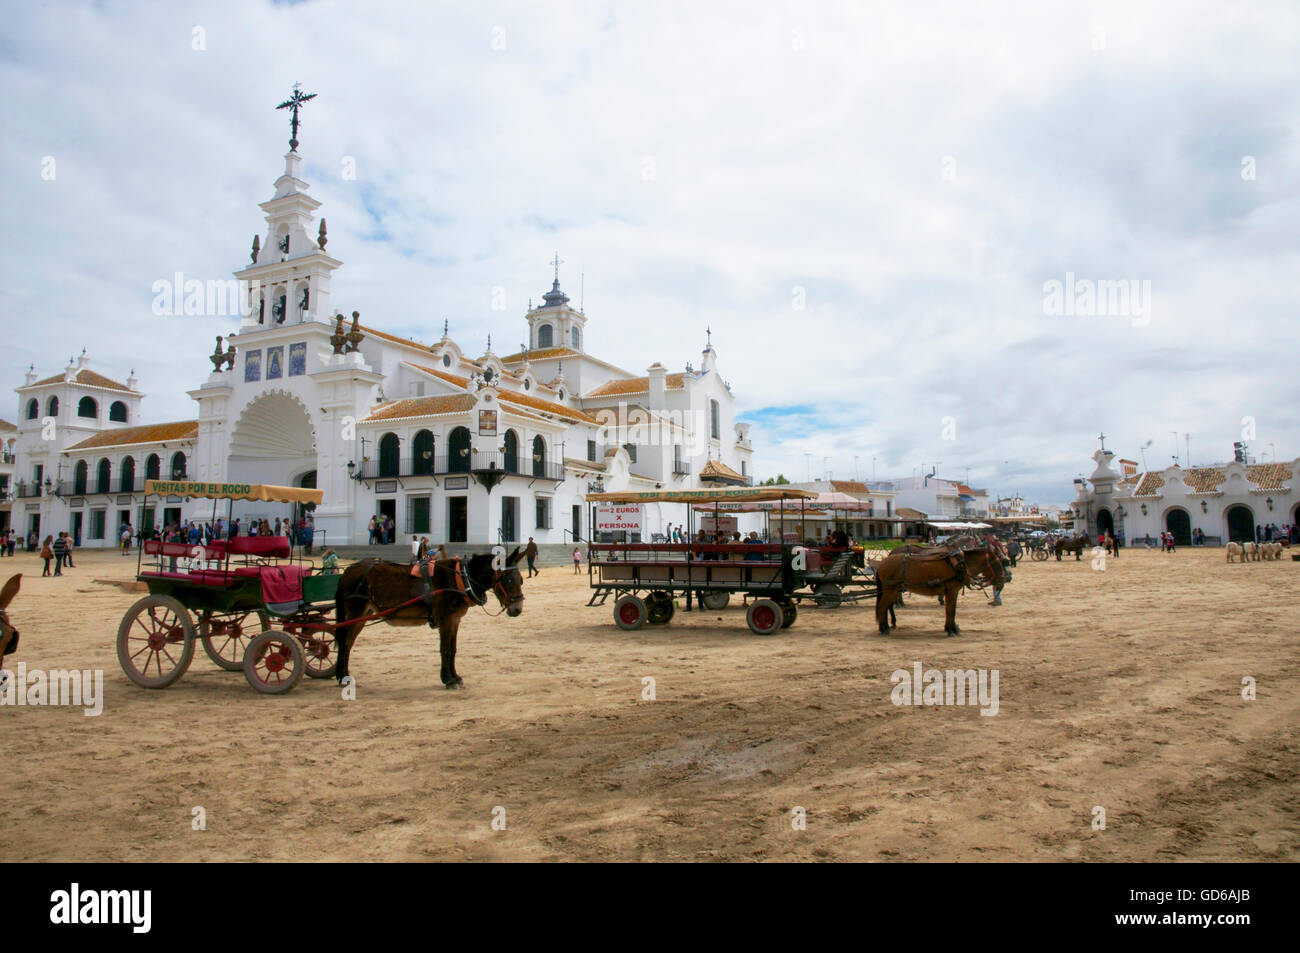 horses and carts awaiting hire in main central area El Rocio. - Stock Image